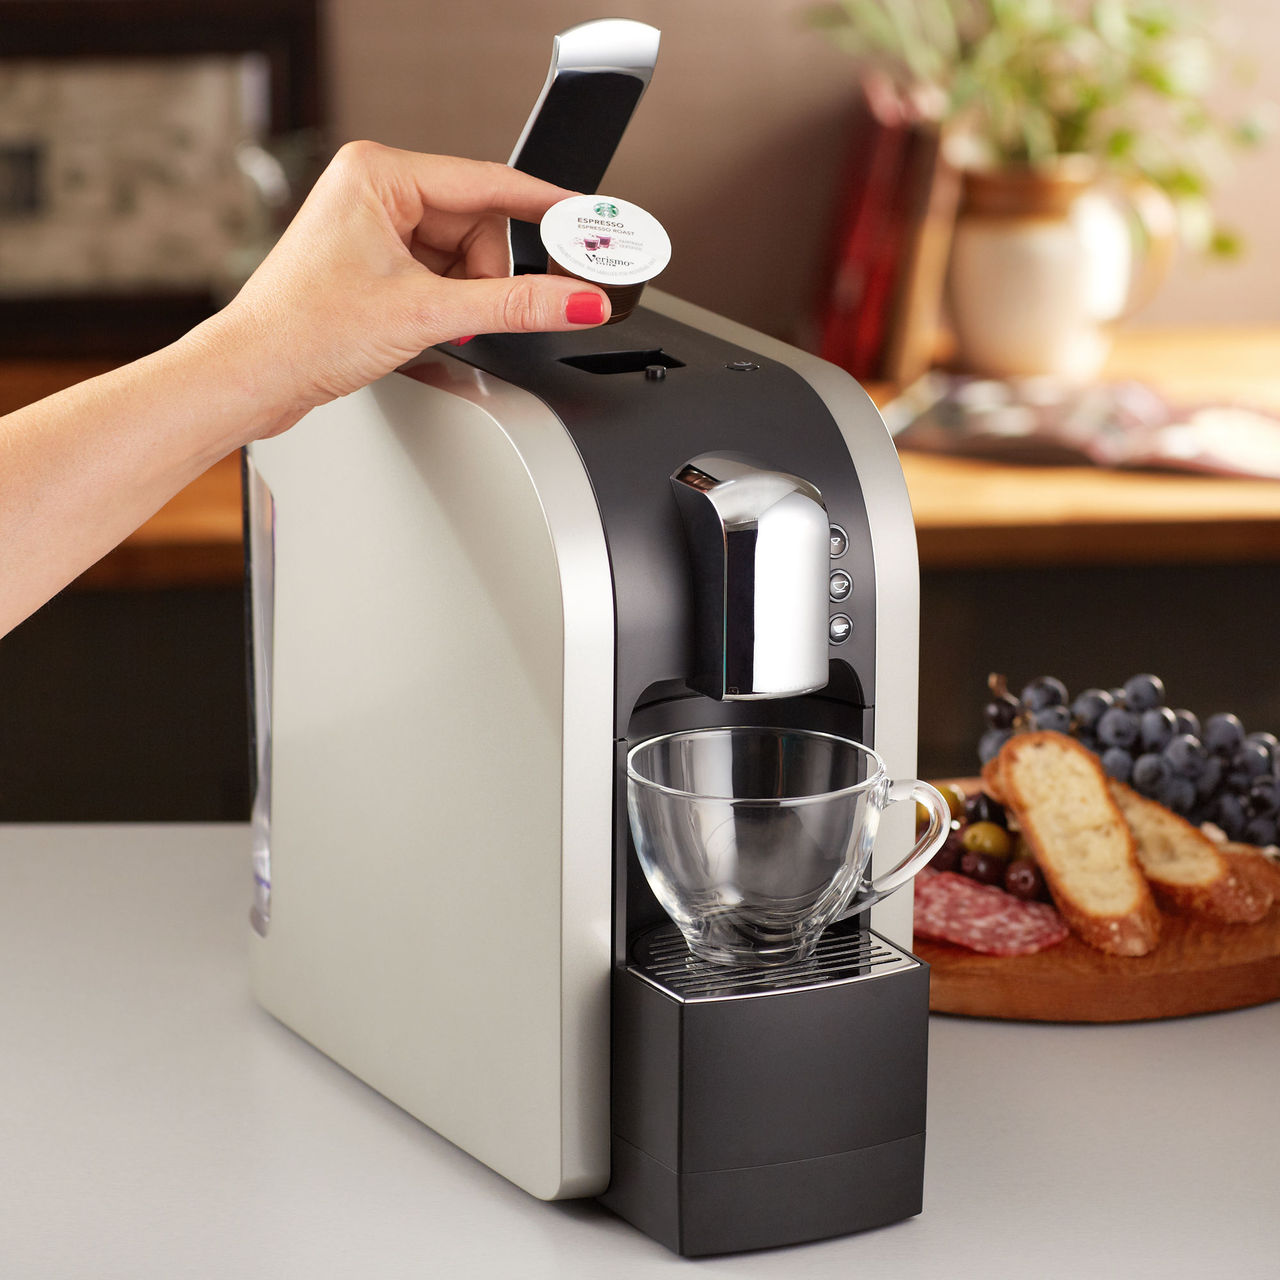 Desire This | Starbucks Verismo Coffee System